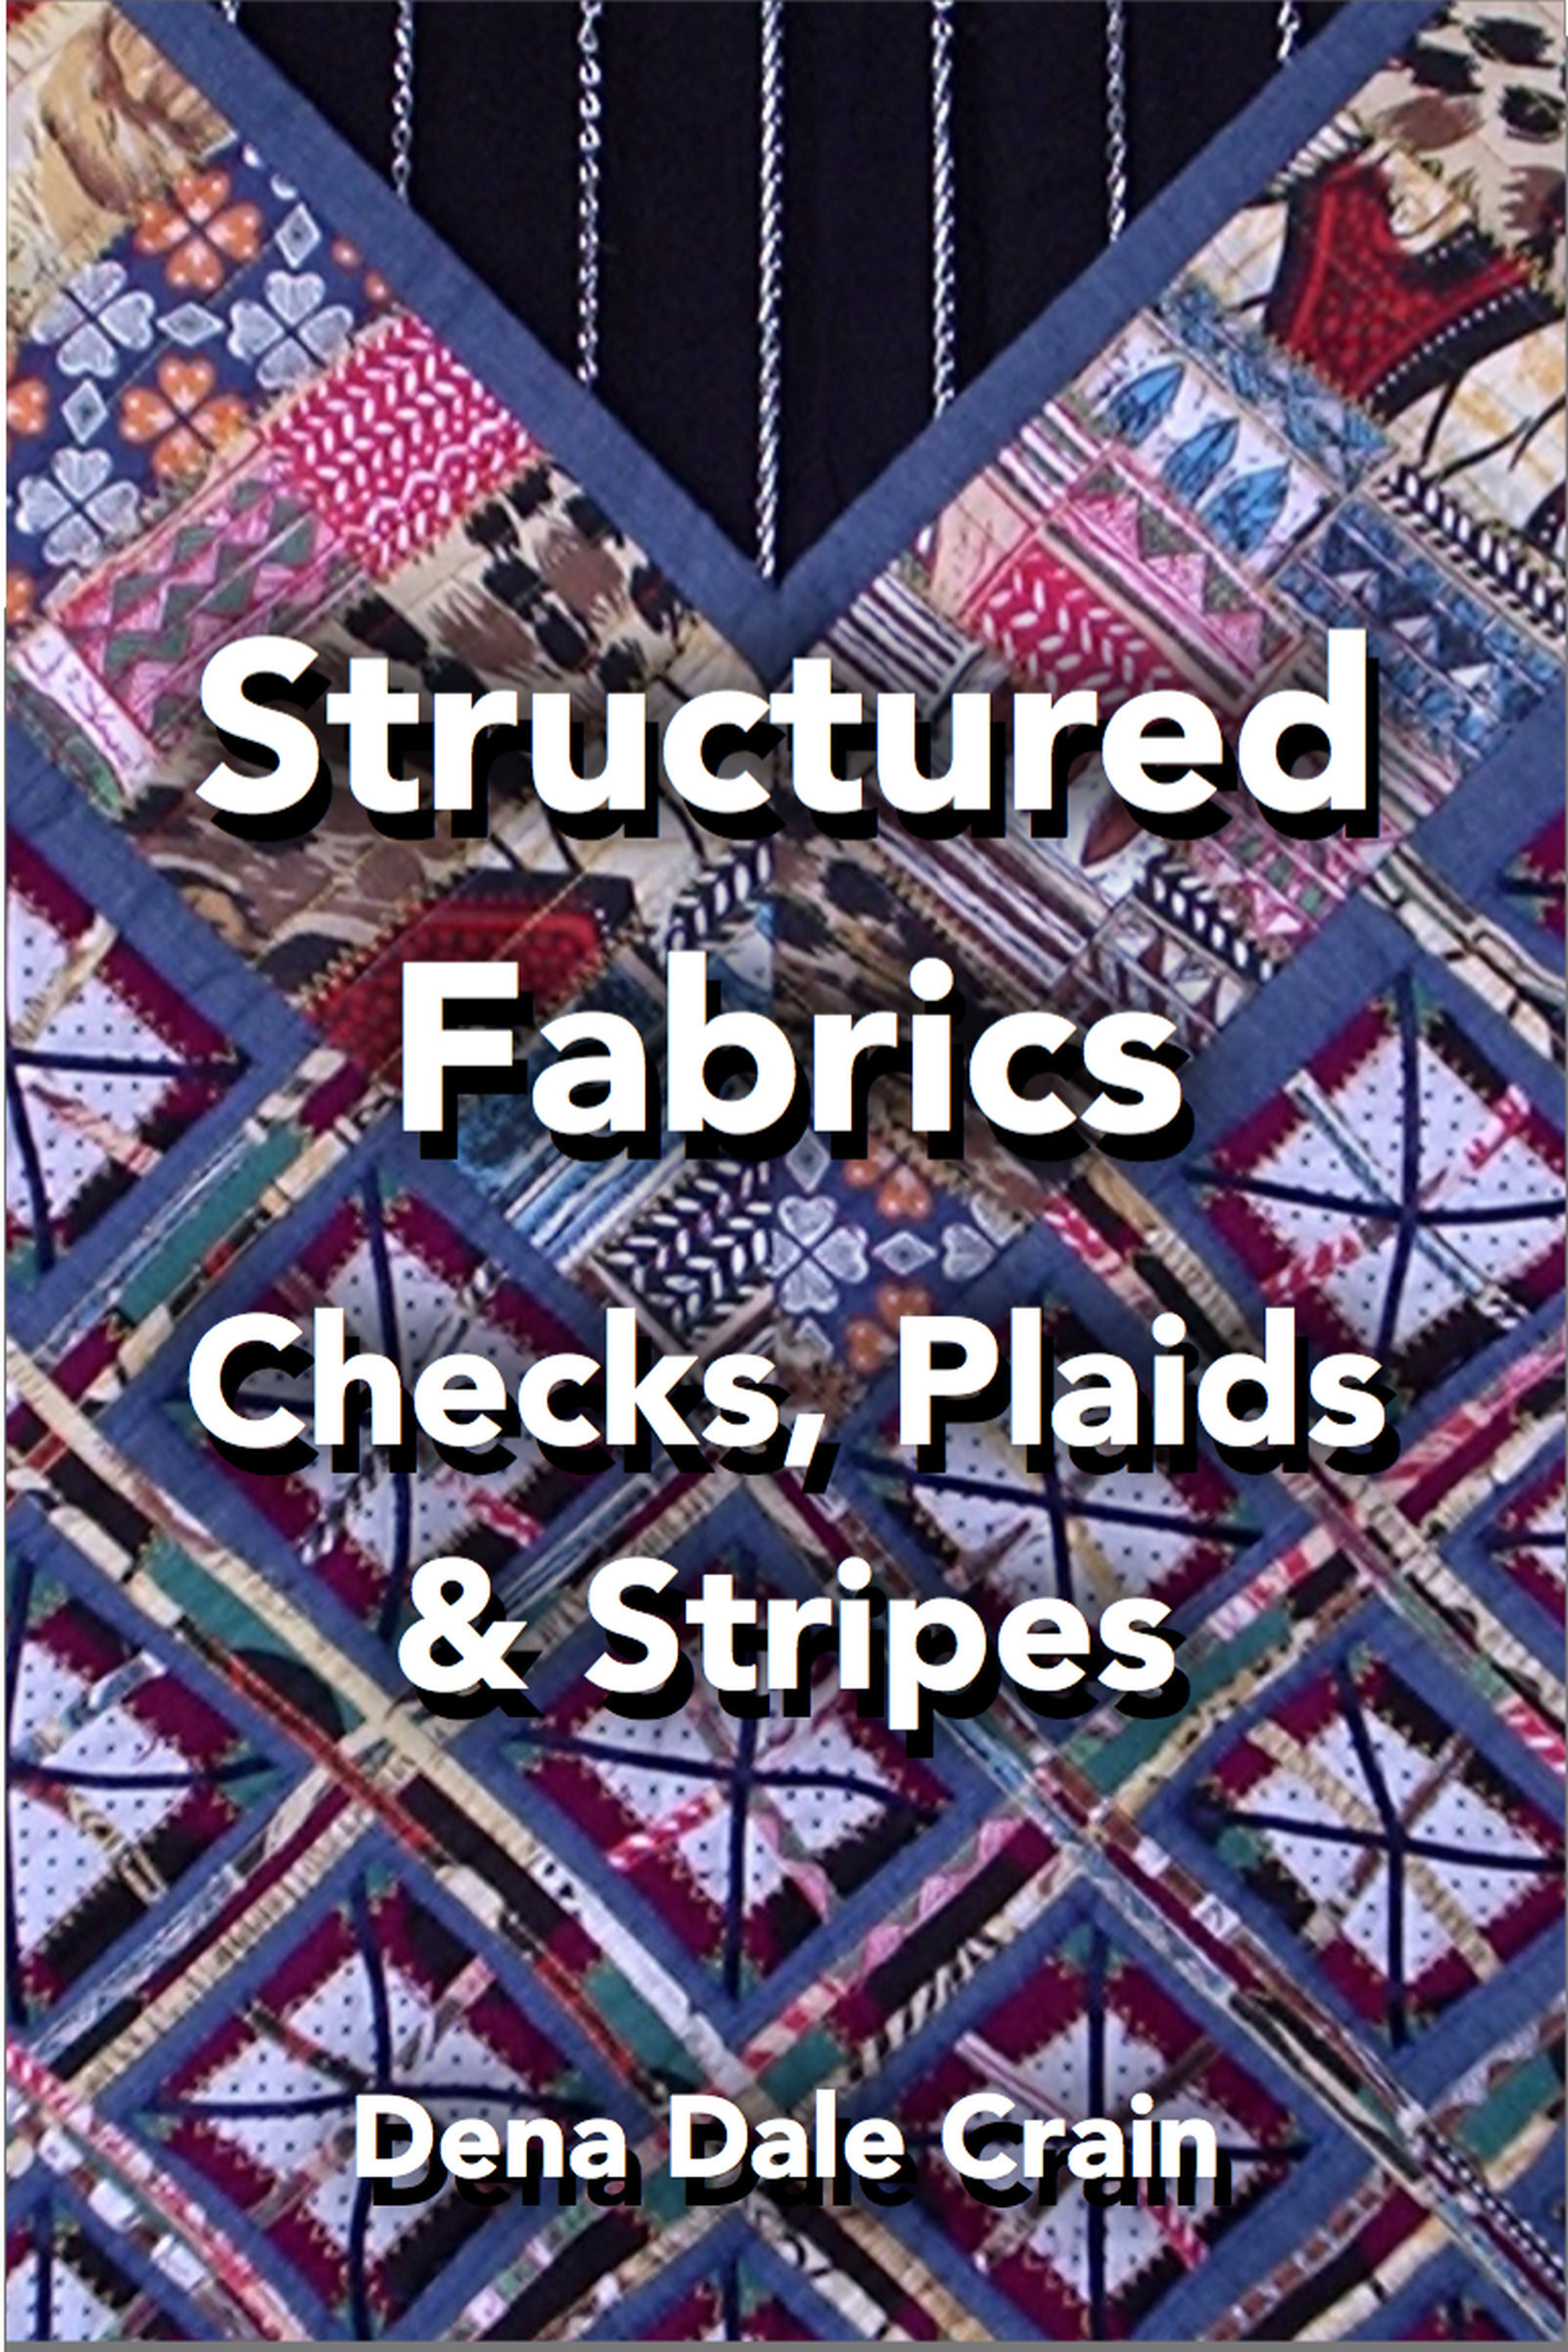 Structured Fabrics: Checks, Plaids and Stripes Dena Dale Crain